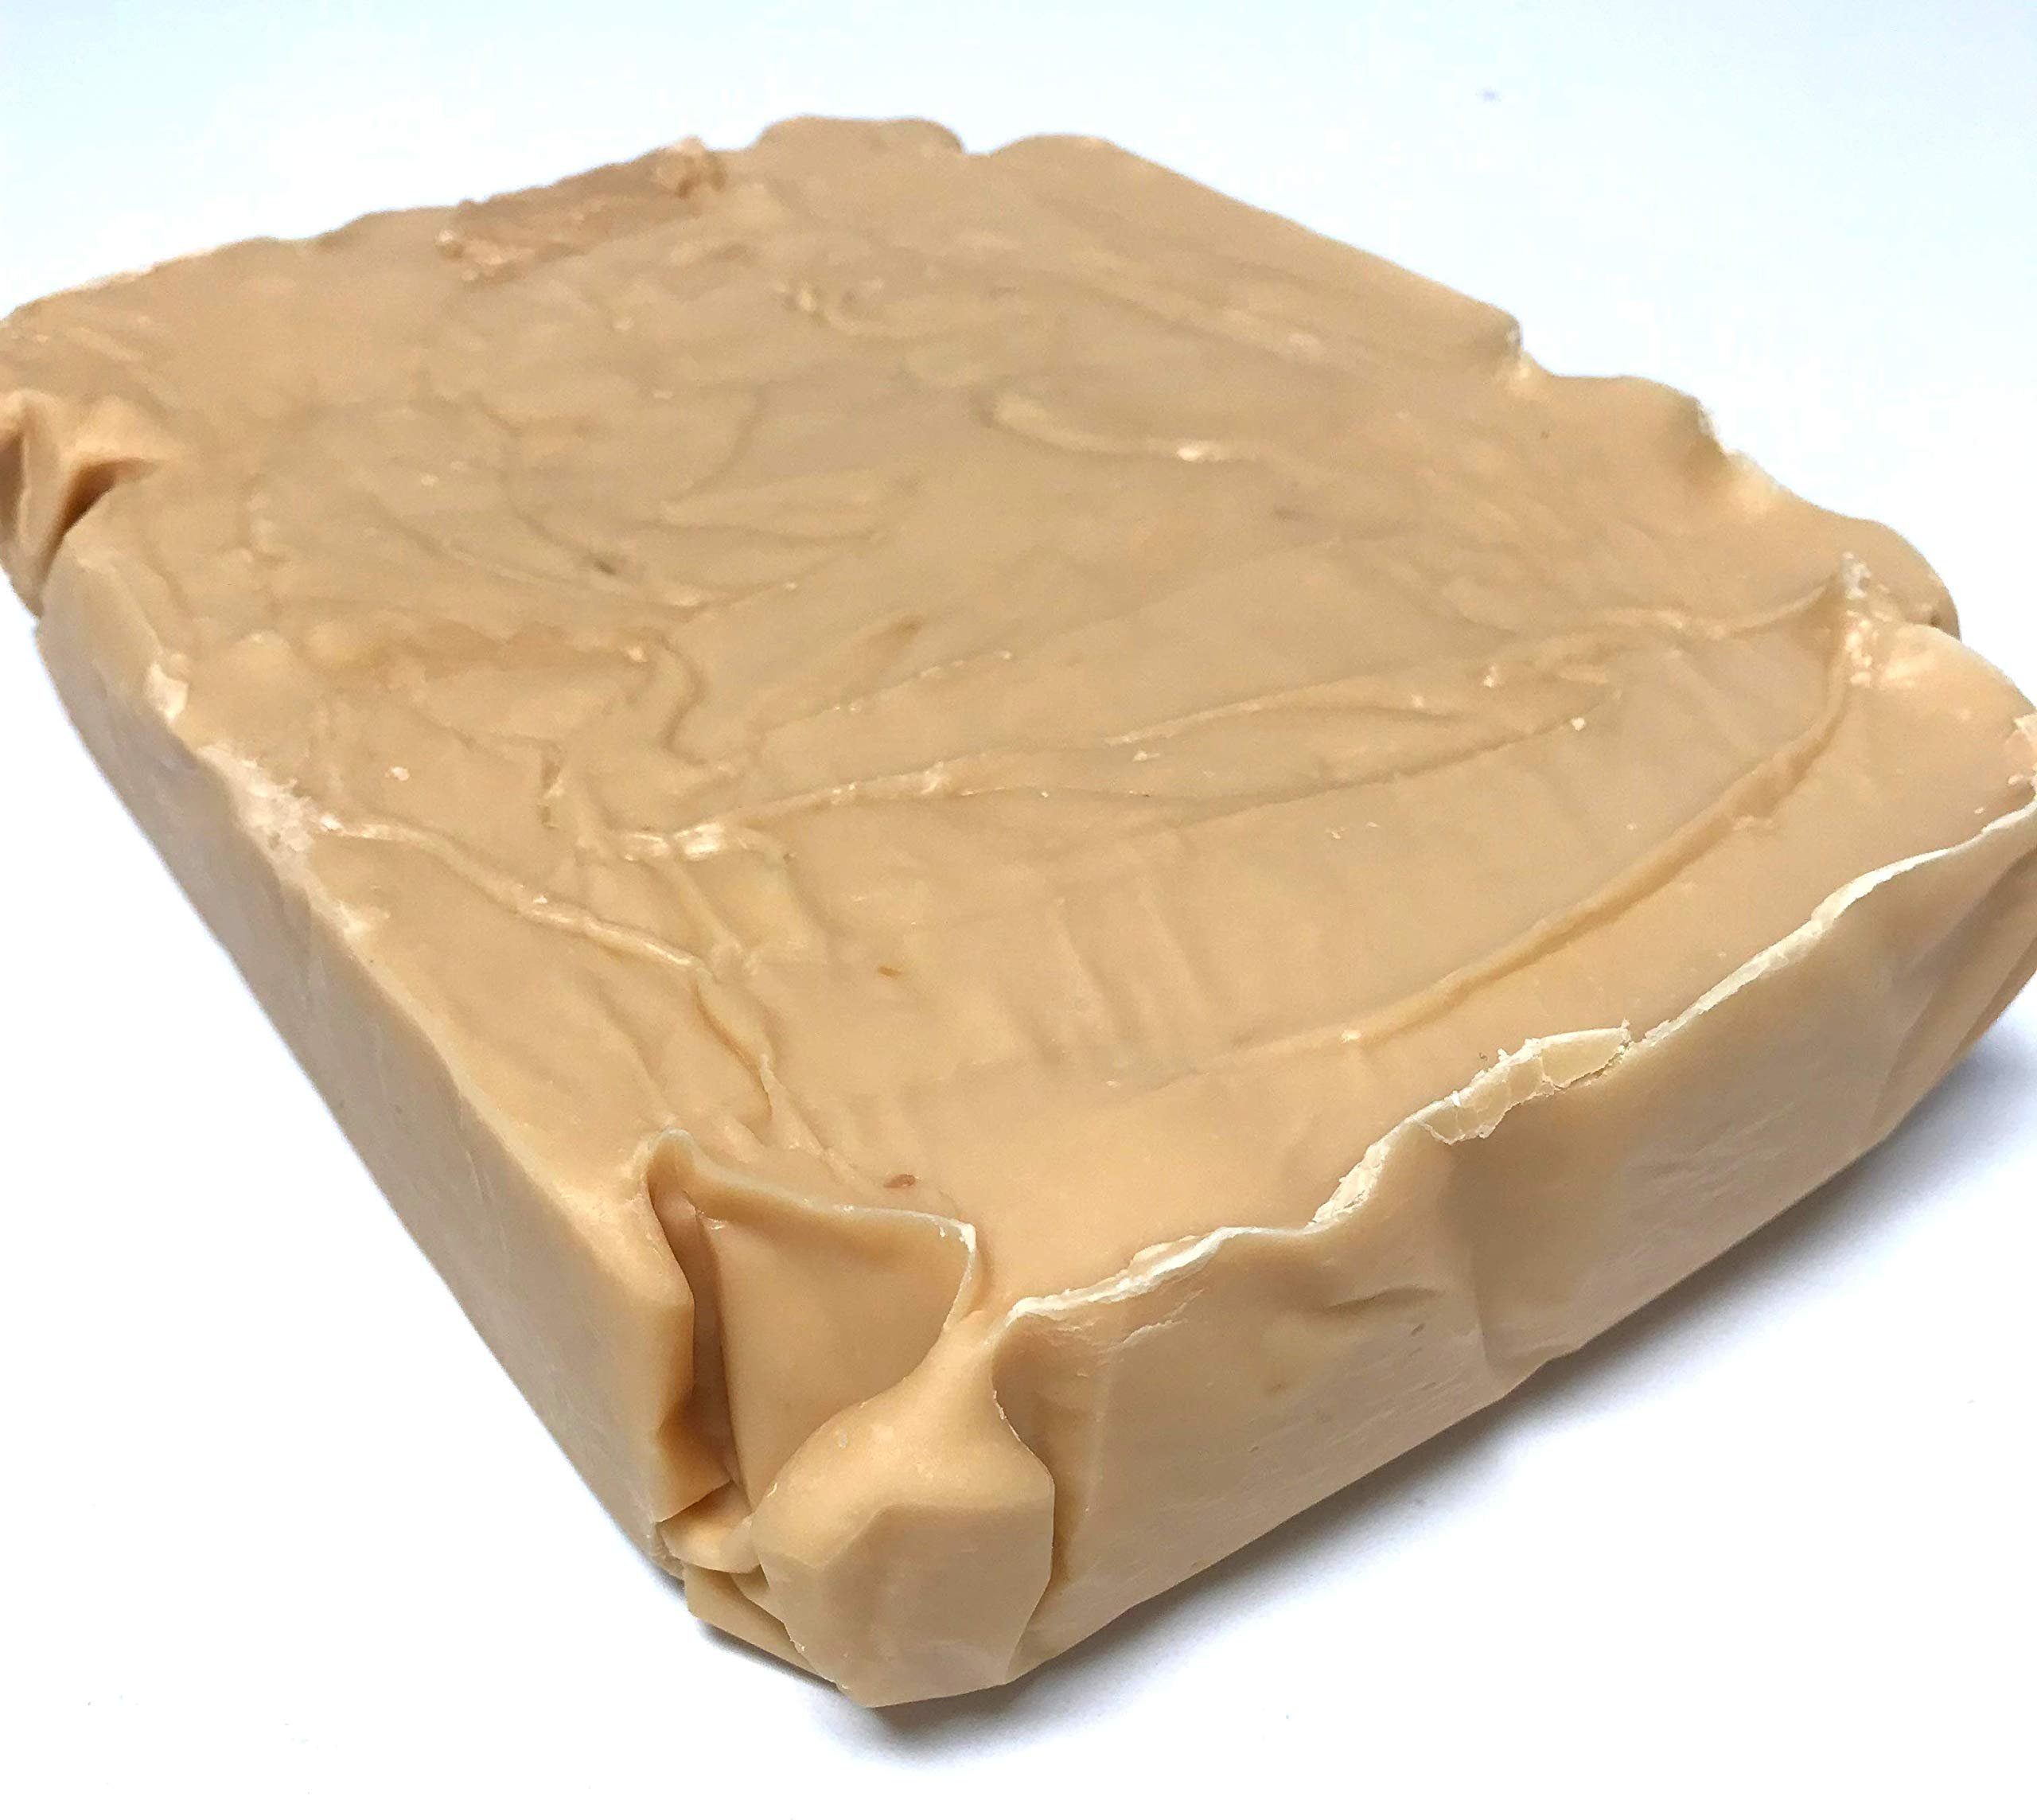 Handmade Fudge 5 Lb. Loaf Vanilla by How Sweet It Is Fudge & Candy Company